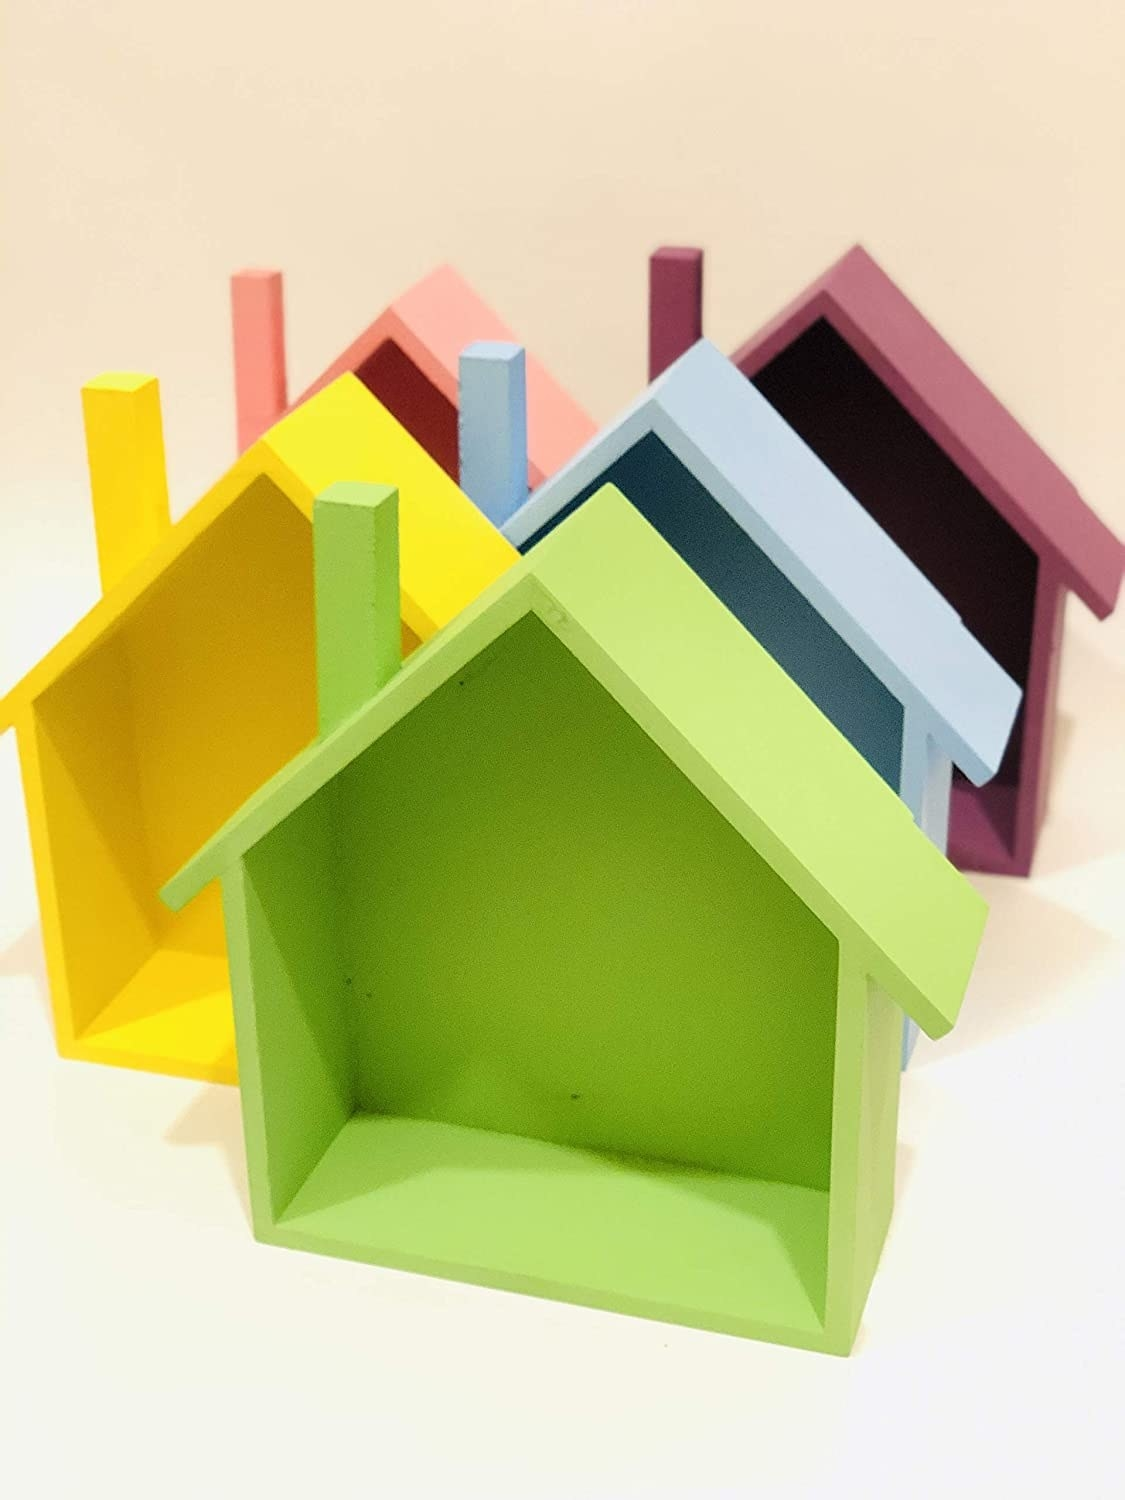 Five shelves shaped like homes in green, yellow, blue, pink and mauve.